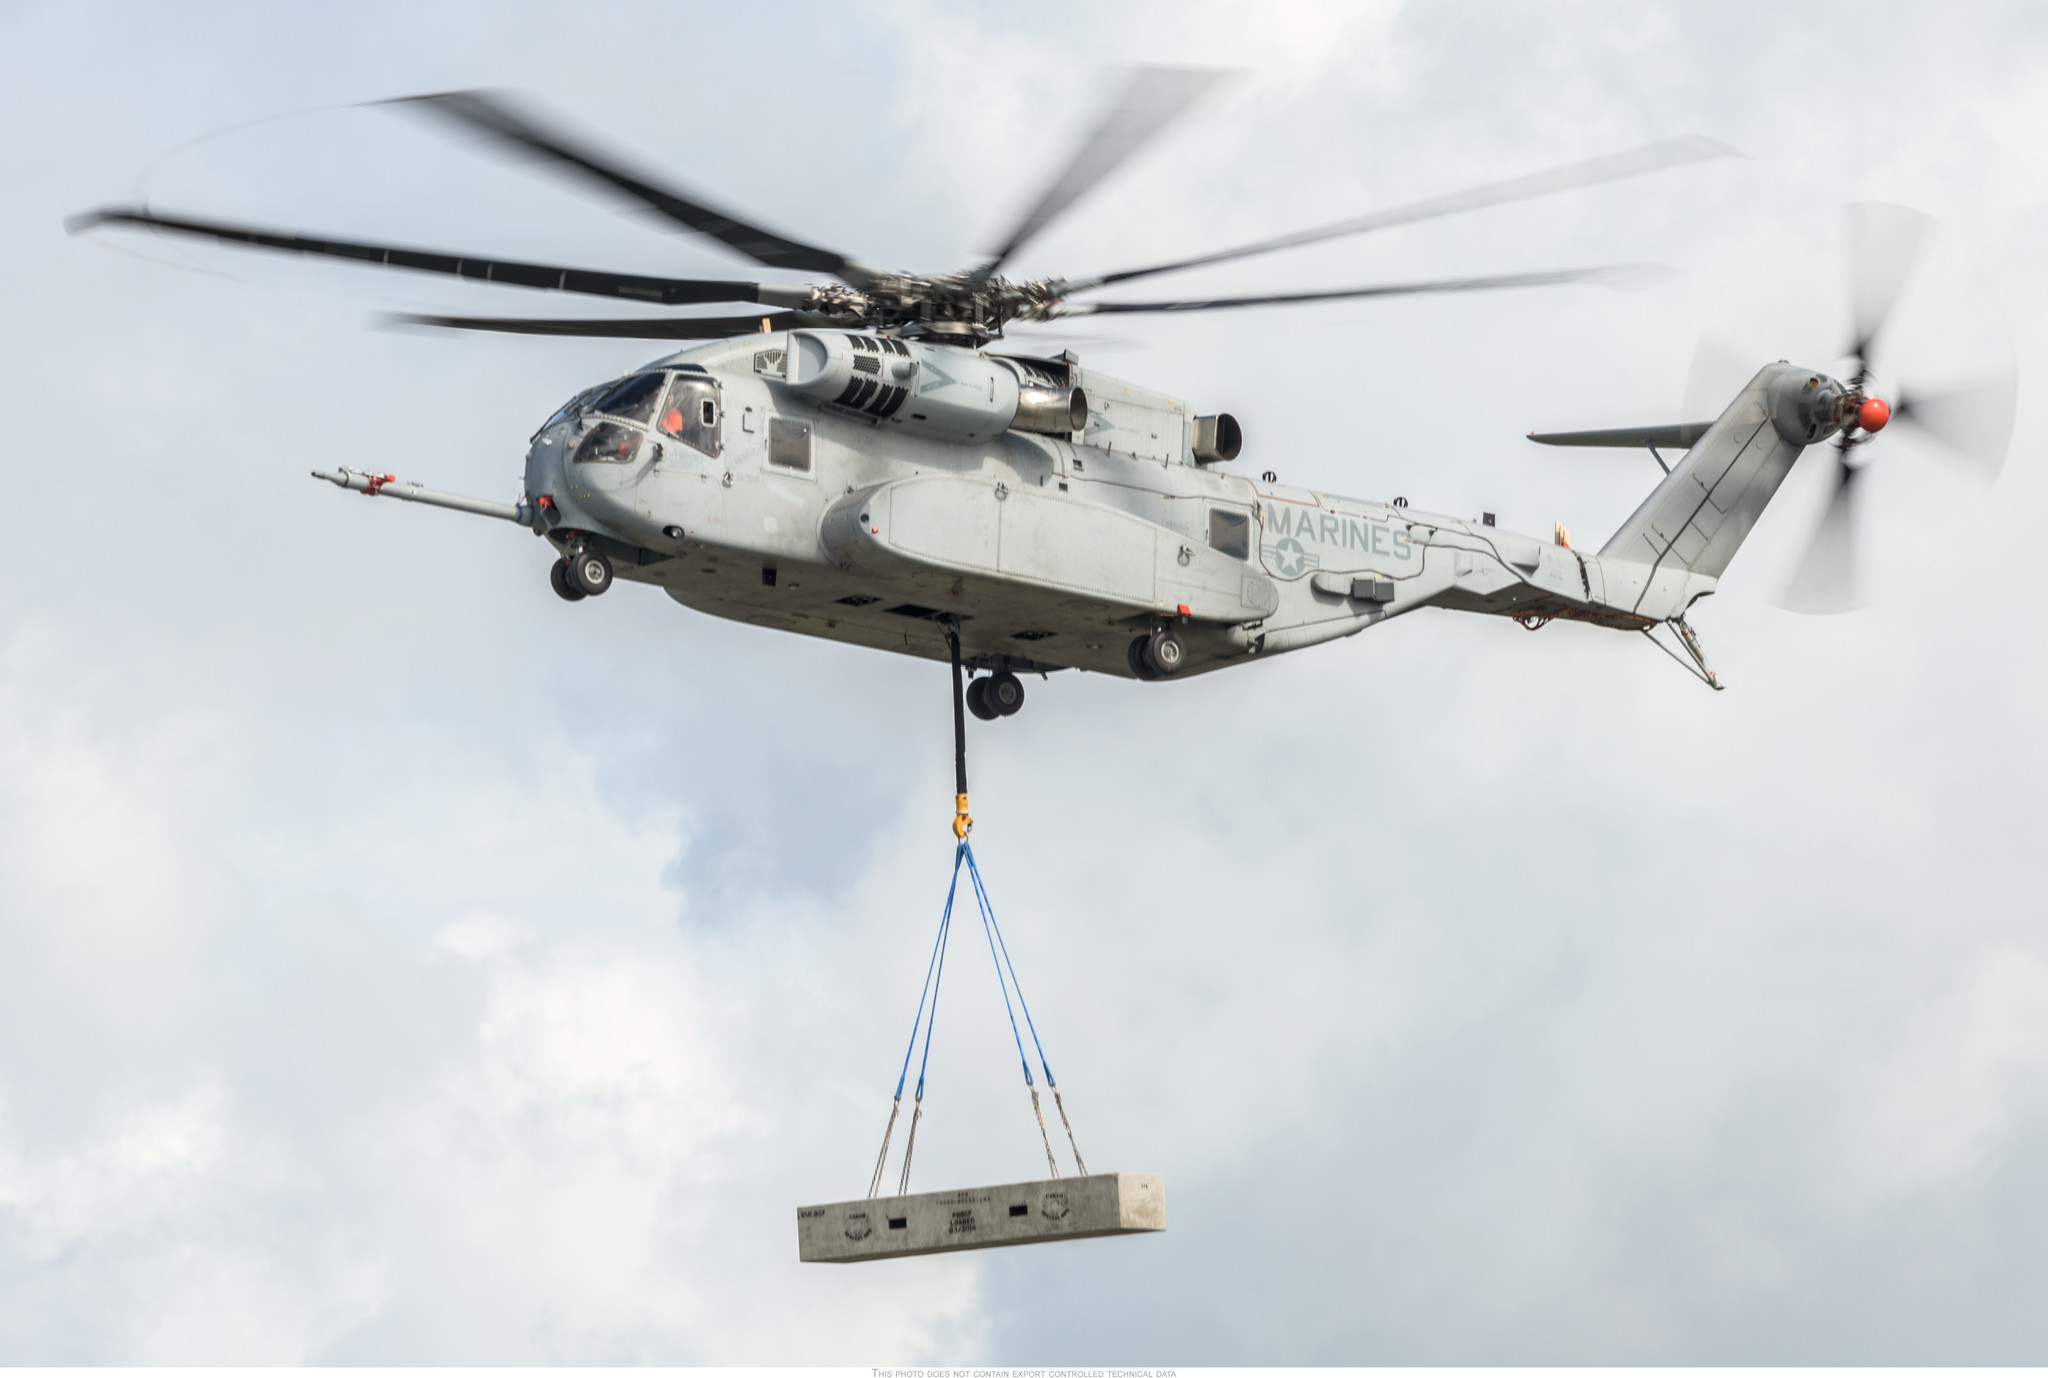 Lockheed's $29 Billion Helicopter Poised to Win Pentagon's Approval